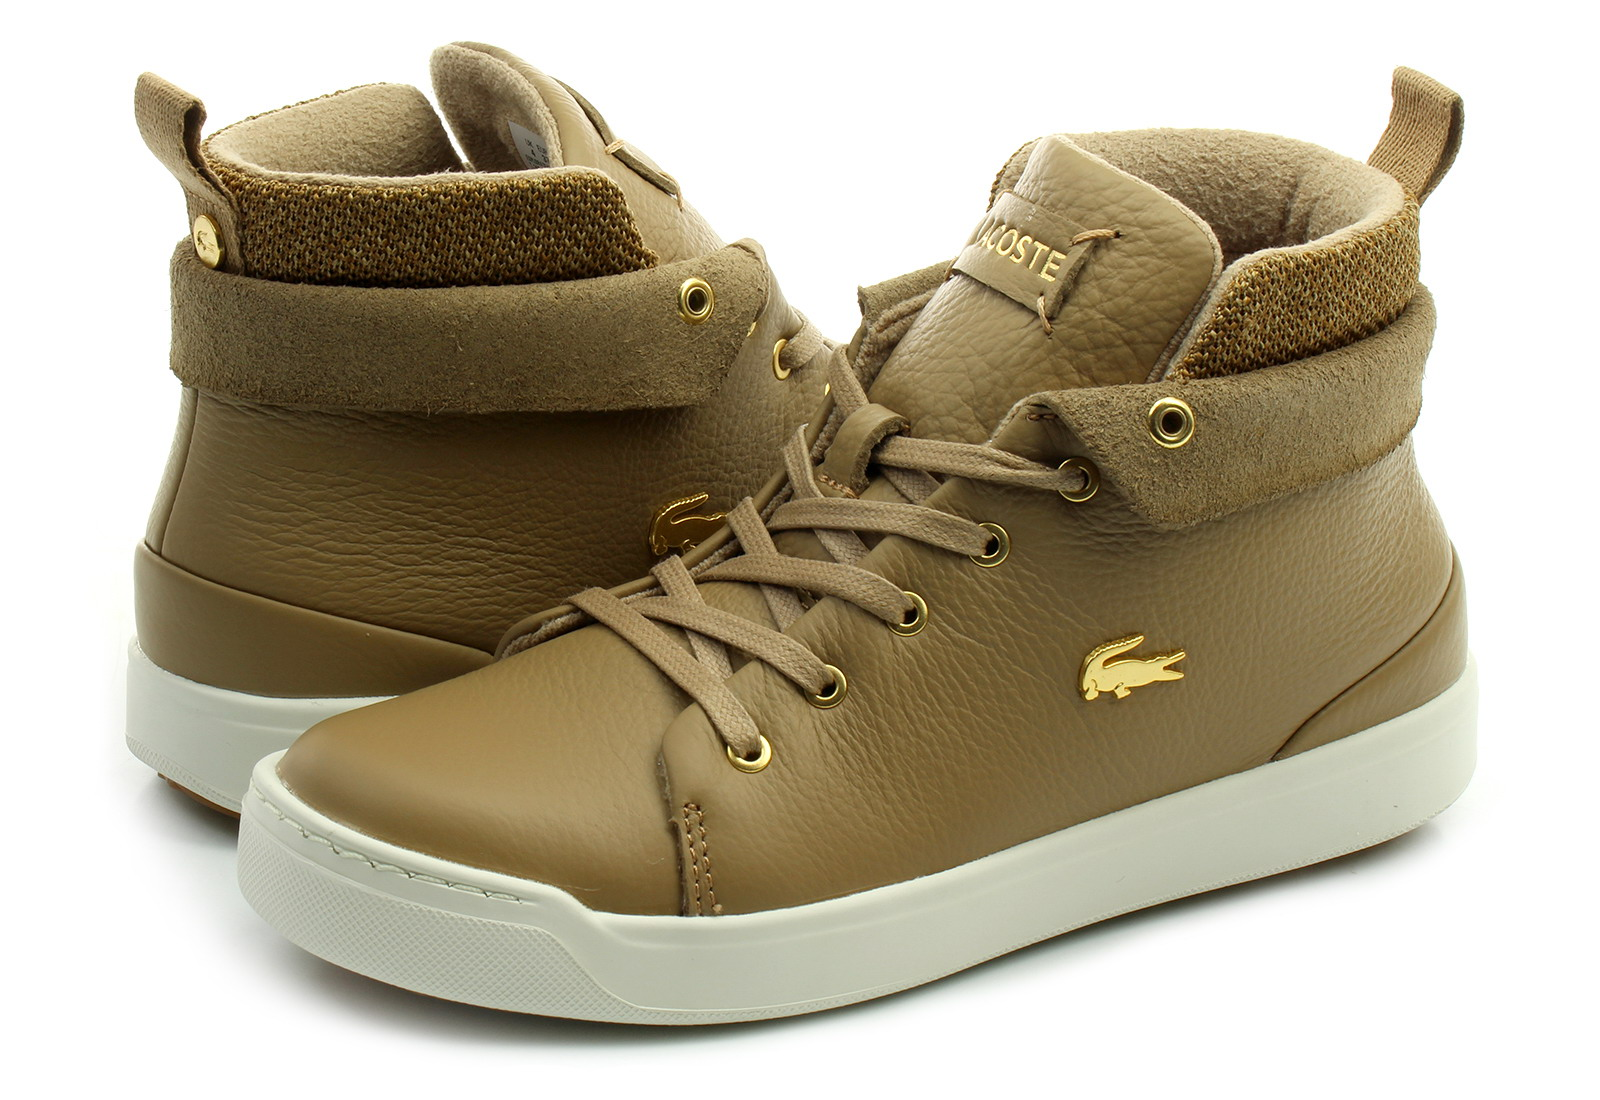 Lacoste Shoes - Explorateur Classic